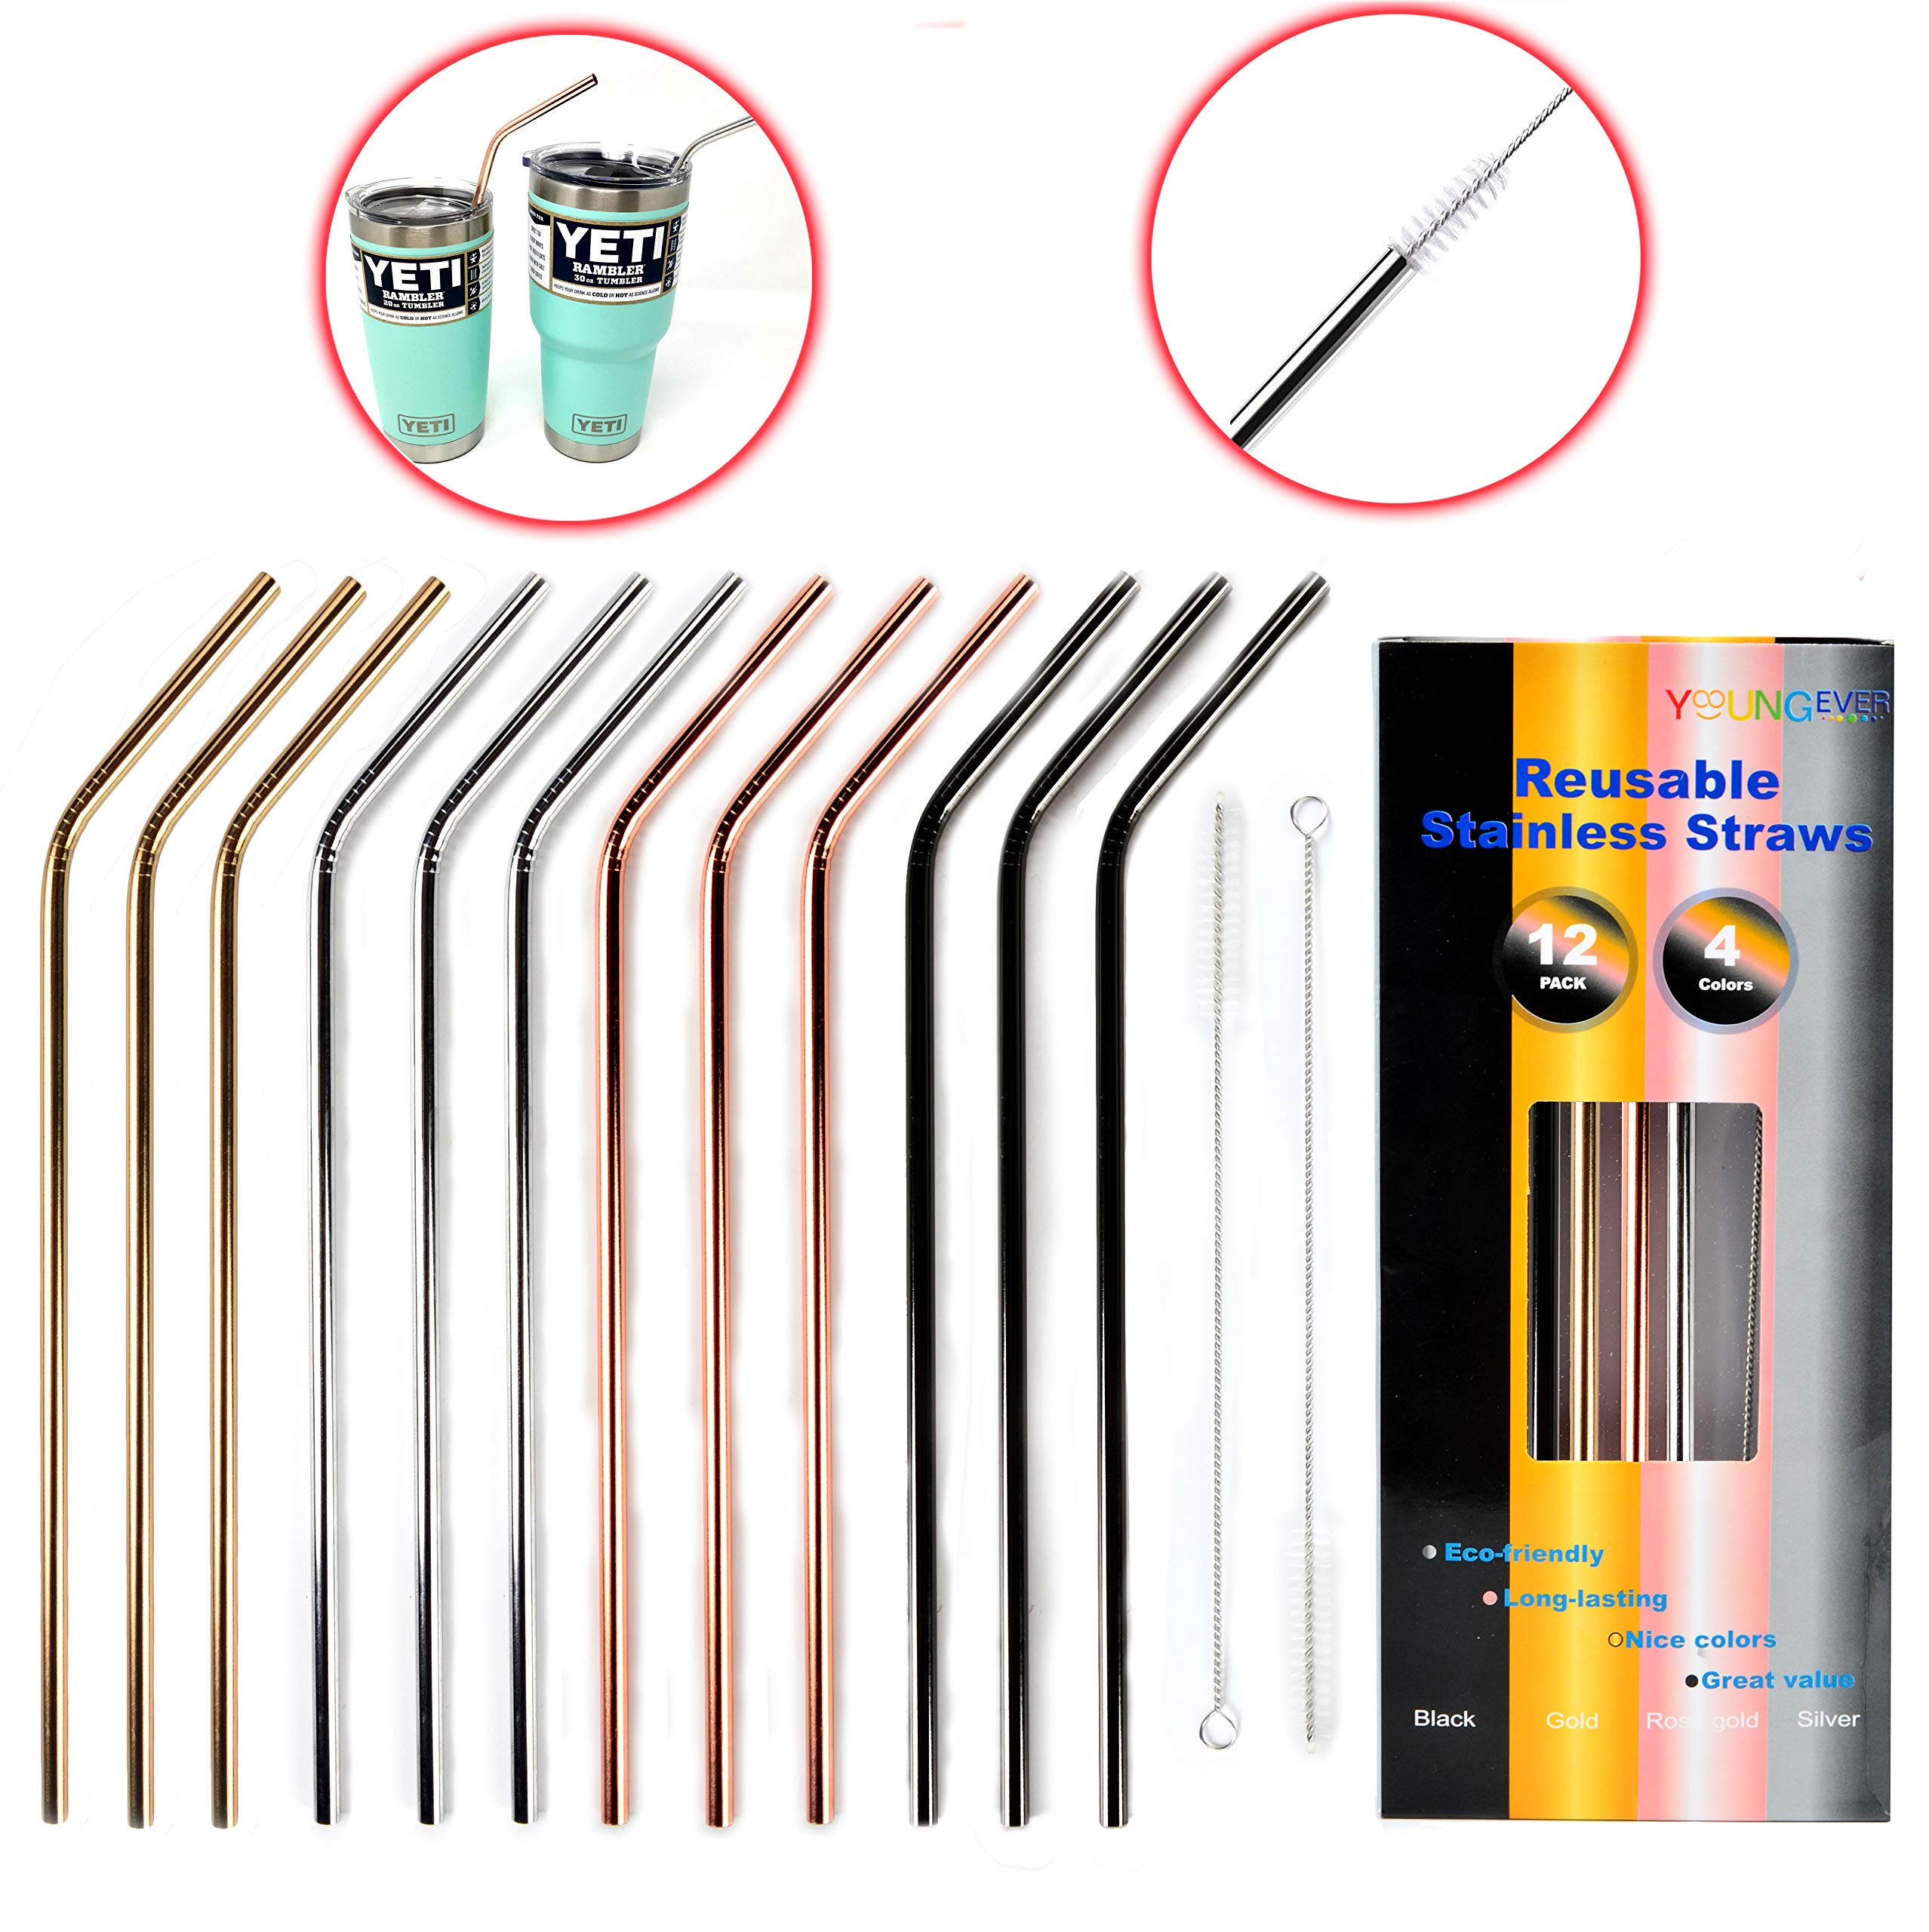 12+2 Pcs Reusable Stainless Steel Straws, Metal Straws, 4 Colors Gold, Silver, Rose Gold & Black - 20 oz & 30 oz Tumblers Straws (Bent)